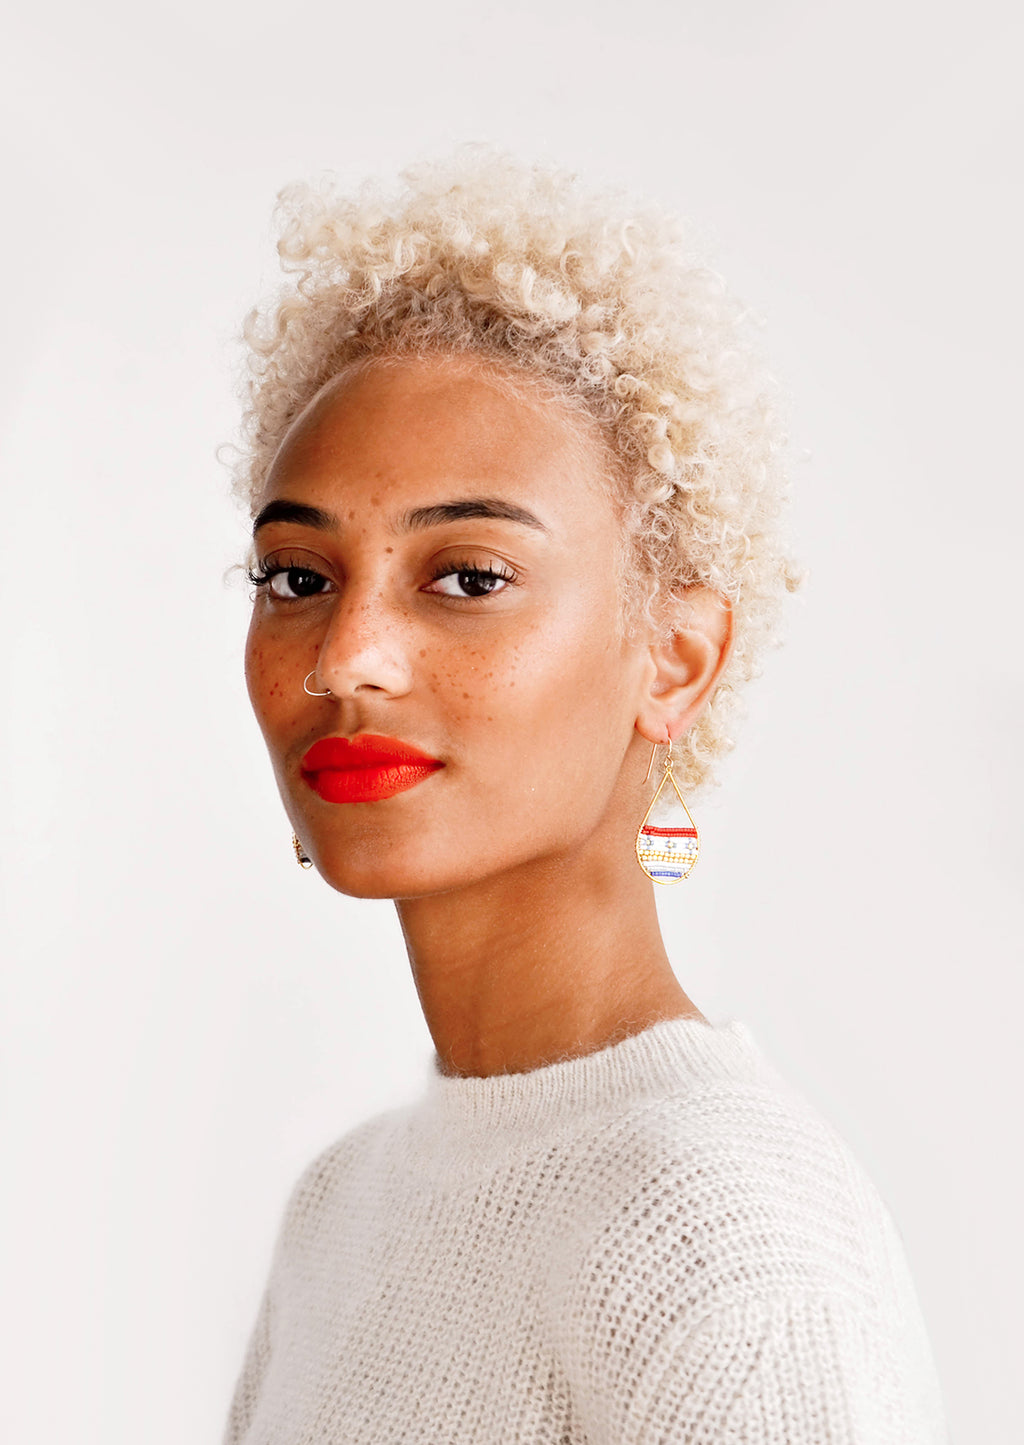 2: Model wears teardrop shaped gold and glass bead earrings.